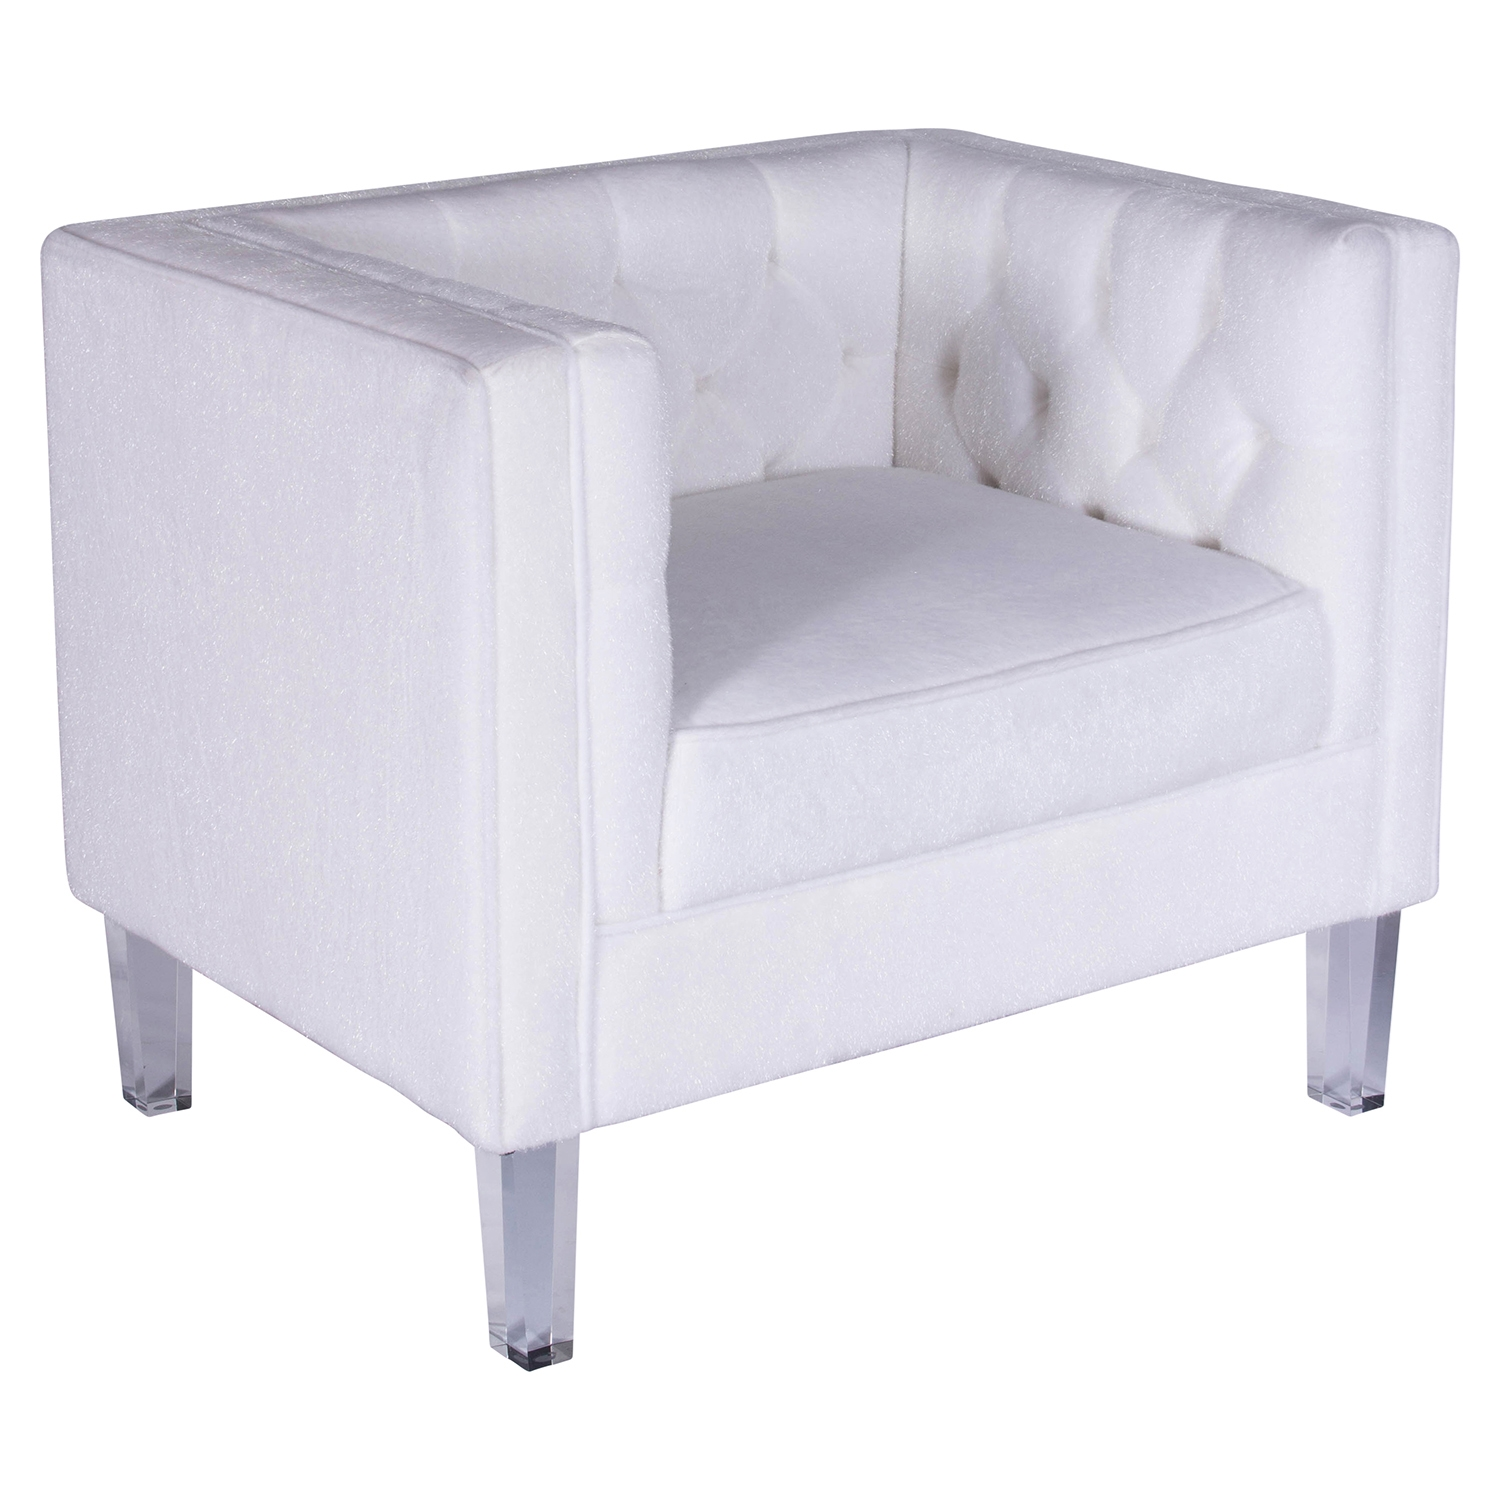 Valentina Tufted Upholstery Armchair - Bone White - LMS-CH-VALTINA-W